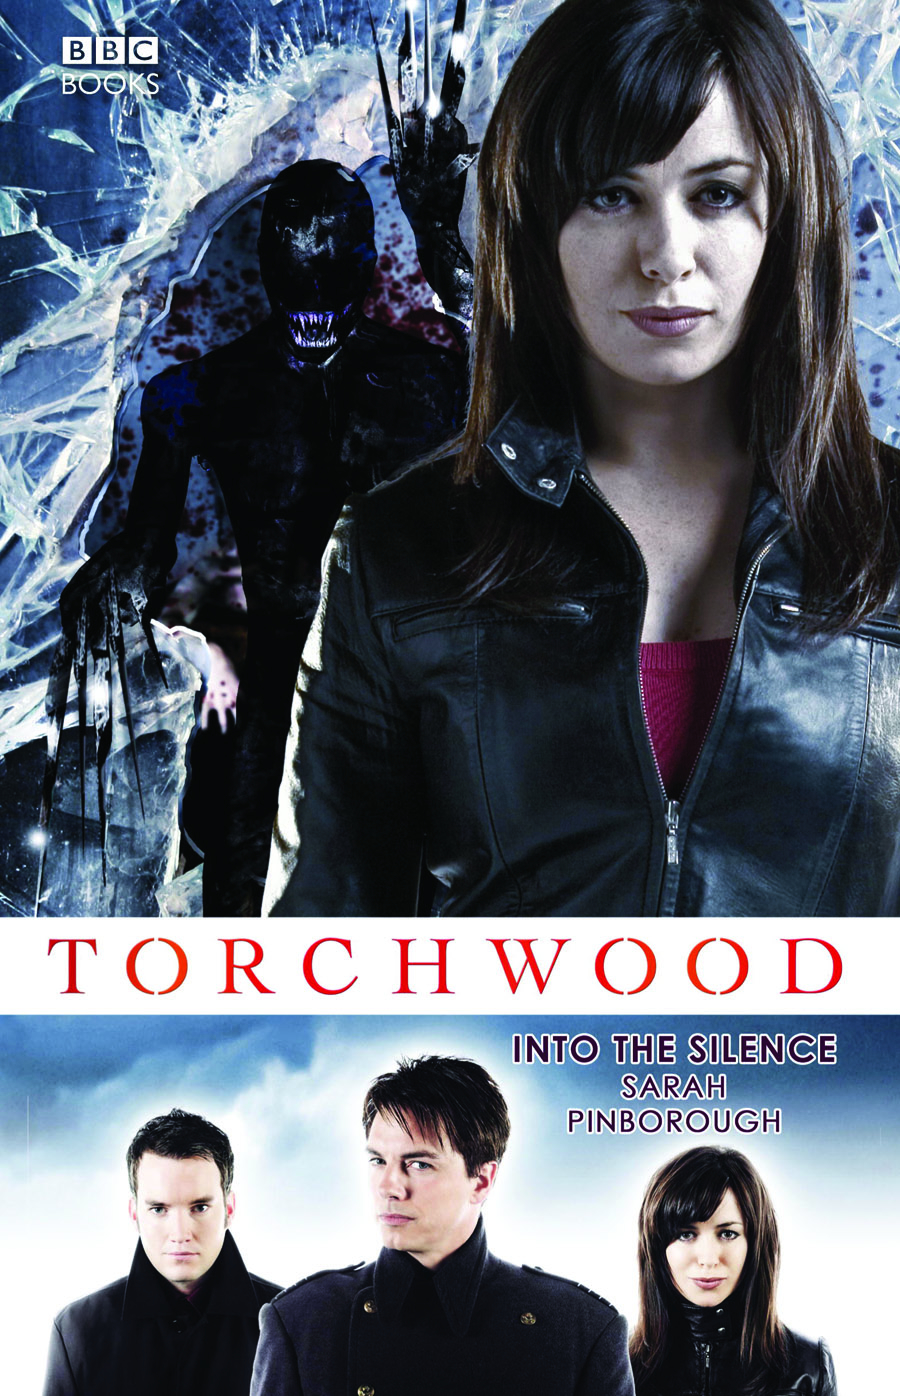 TORCHWOOD INTO THE SILENCE SC